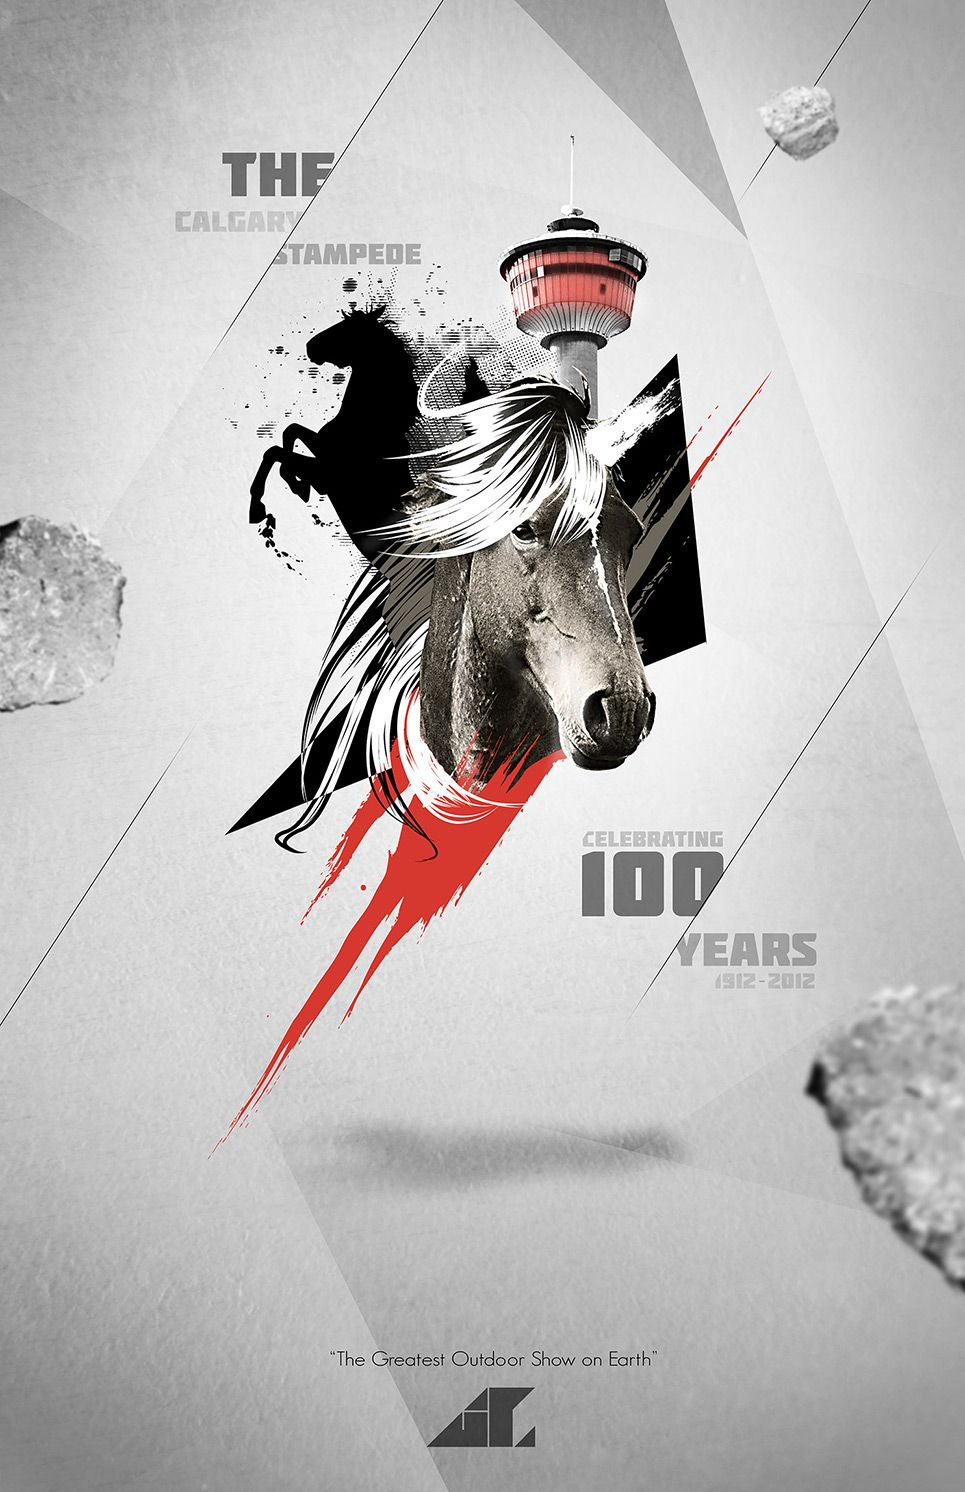 Calgary Stampede 100th Anniversary Poster On My Sense Of